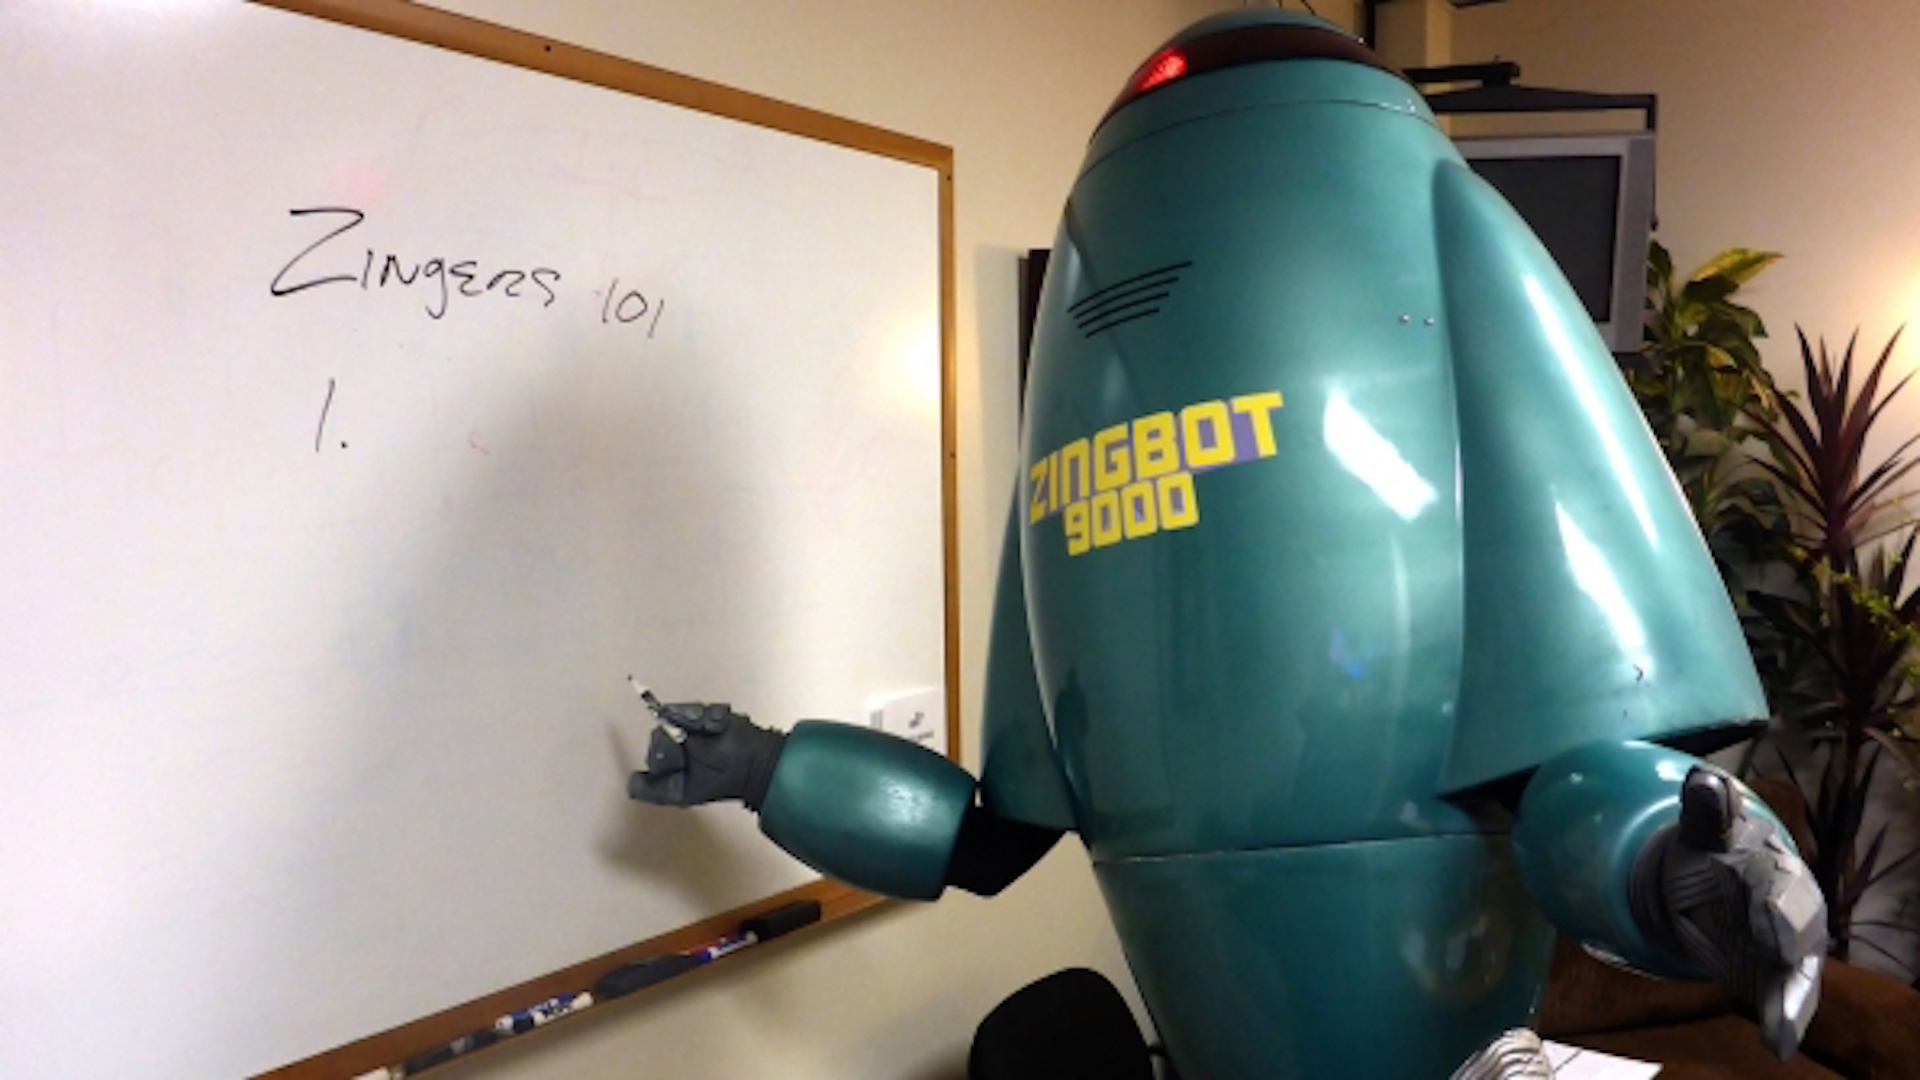 18. The Zingbot's funny disses